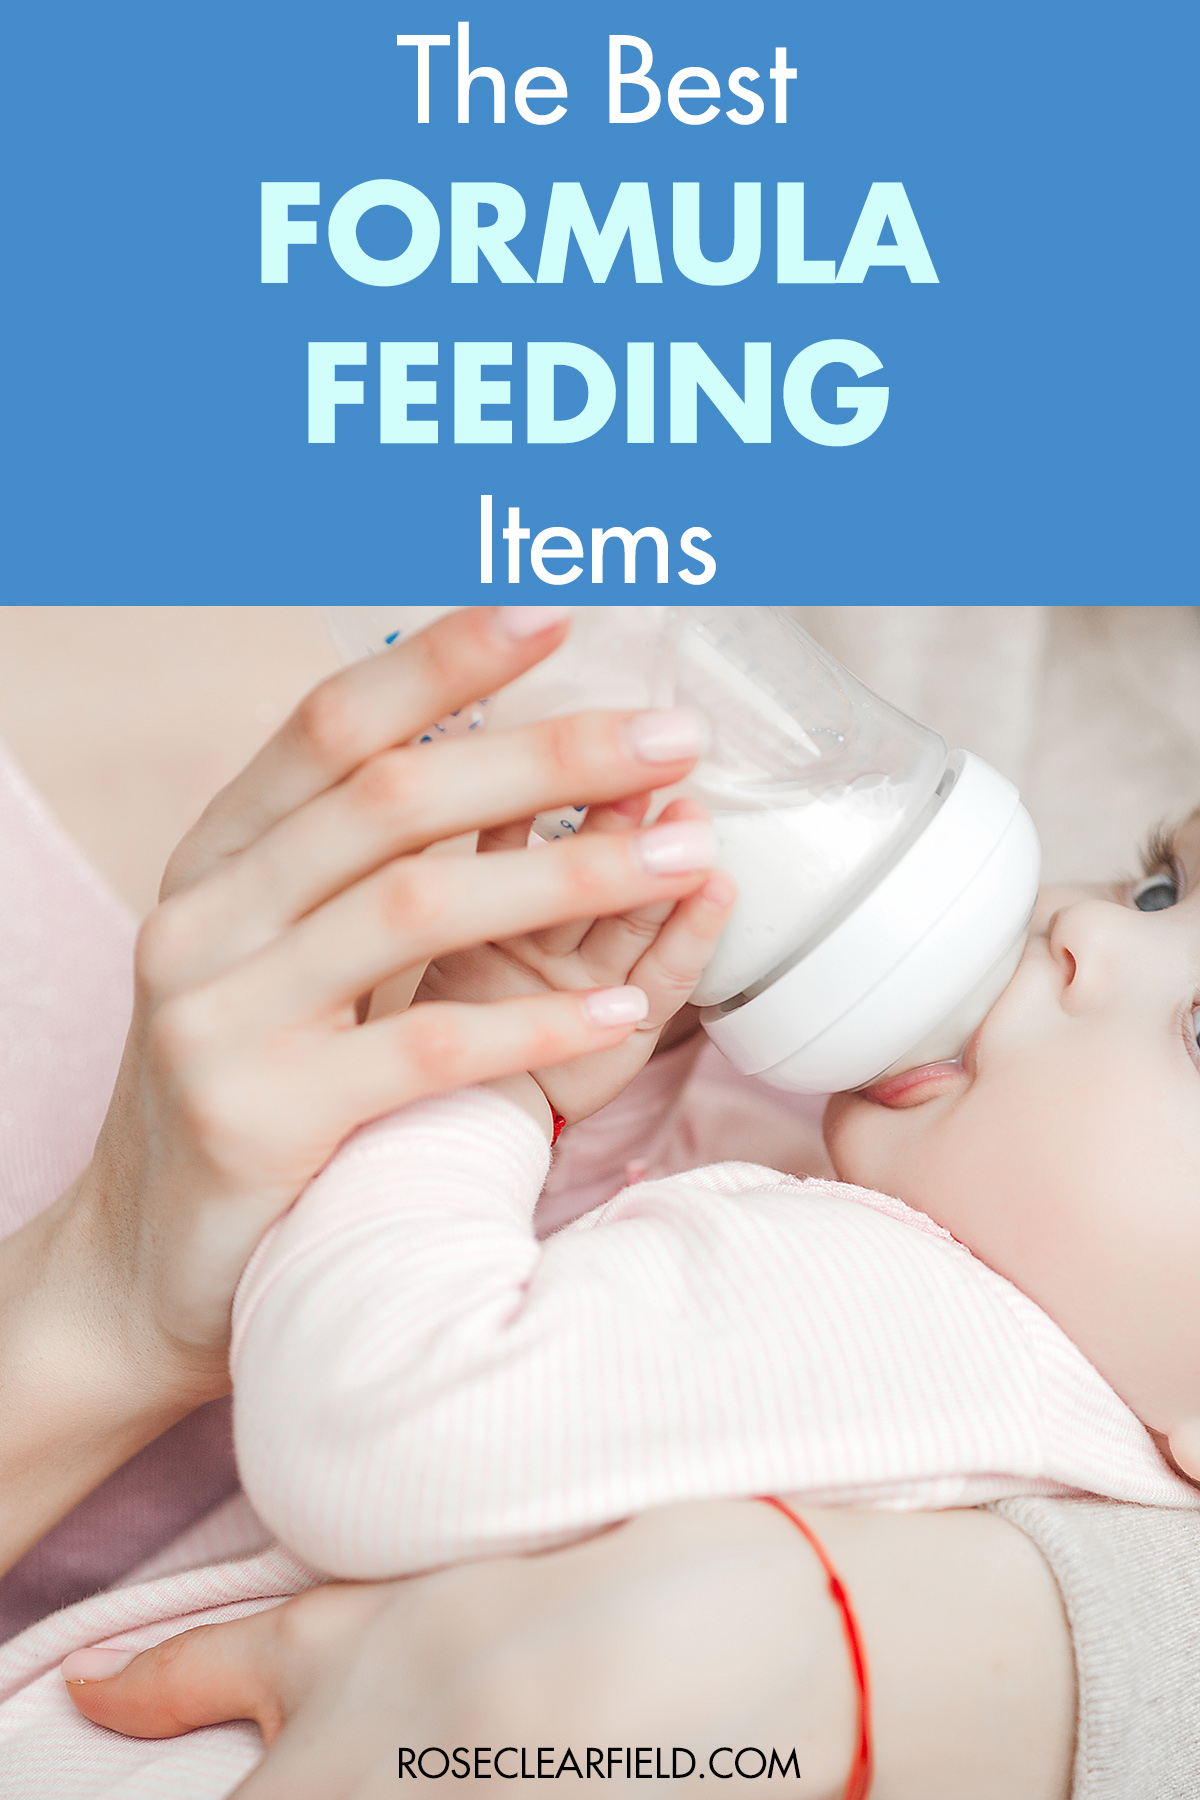 The Best Formula Feeding Items